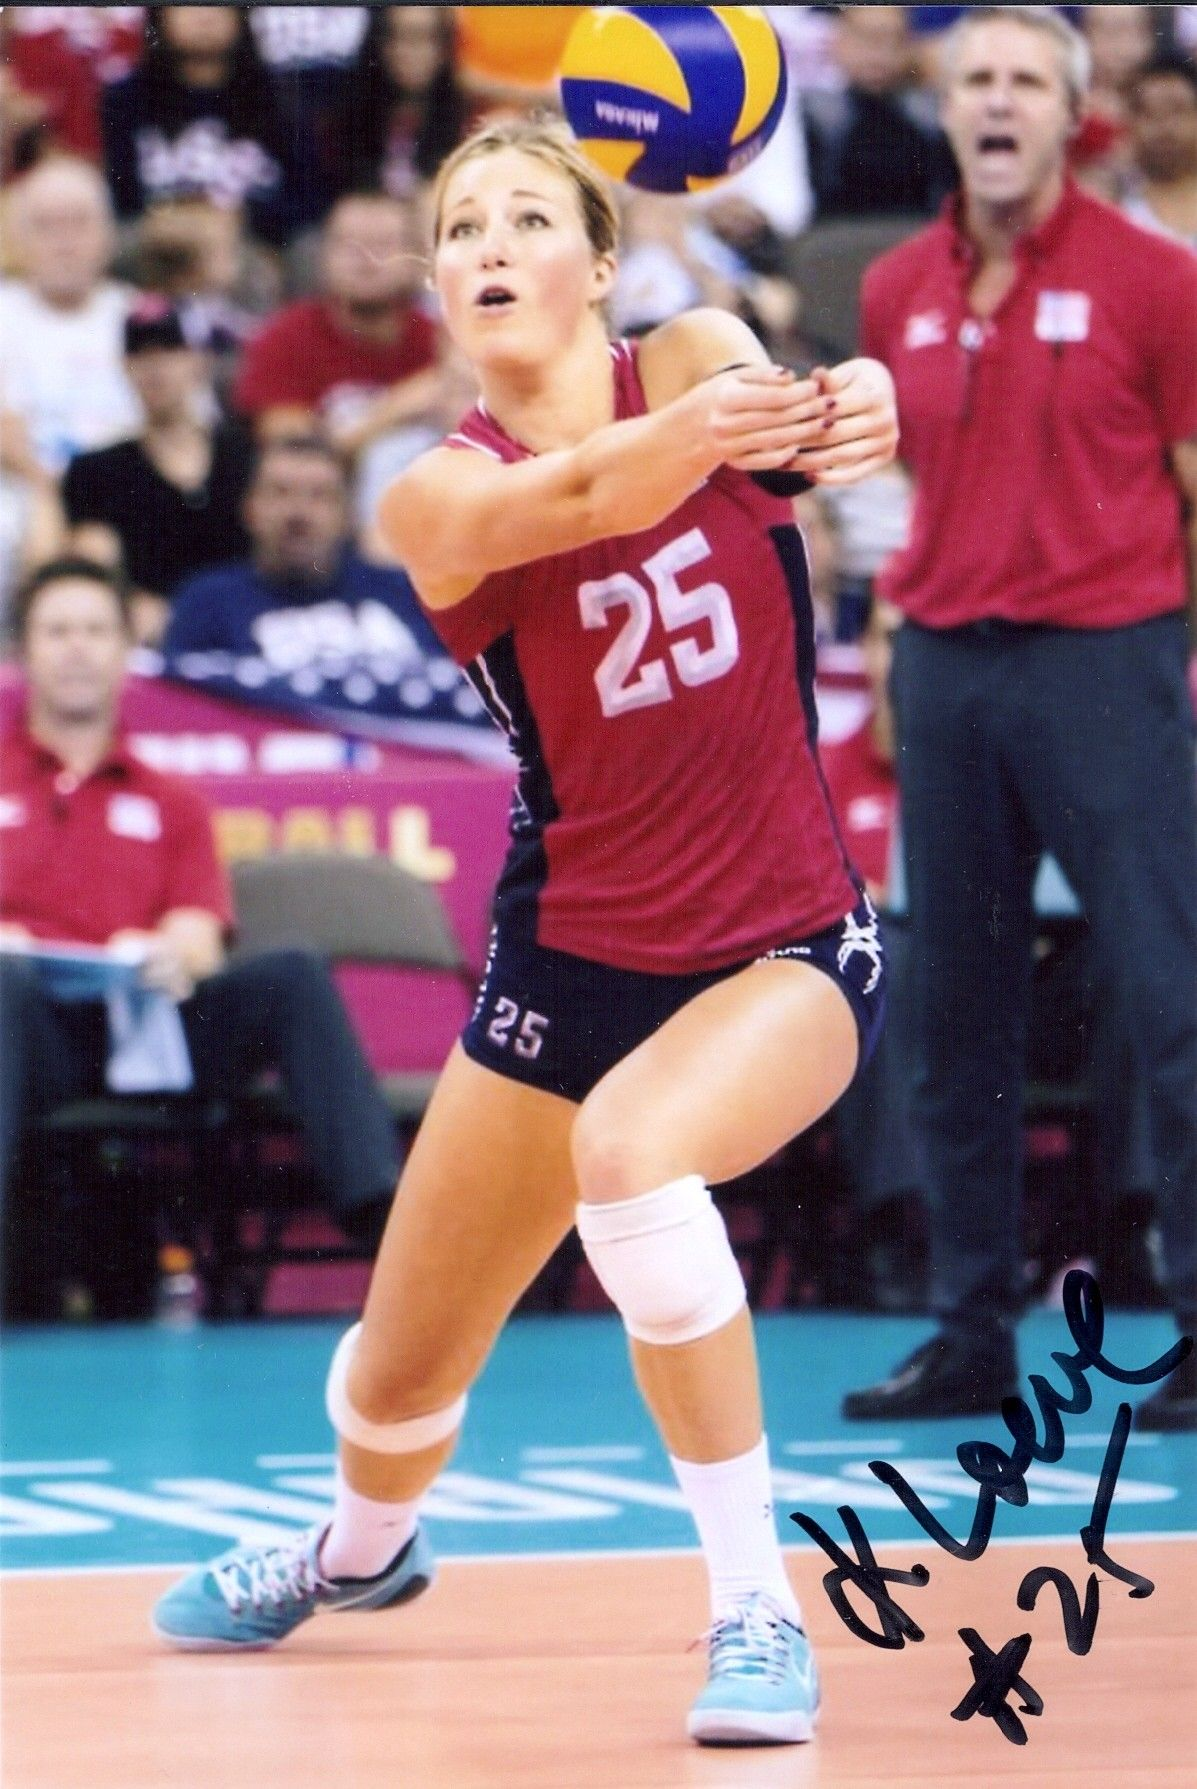 4x6 Karsta Lowe Autograph 2016 Bronze Ucla 2015 1st Team All American Usa Volleyball Volleyball Players Volleyball